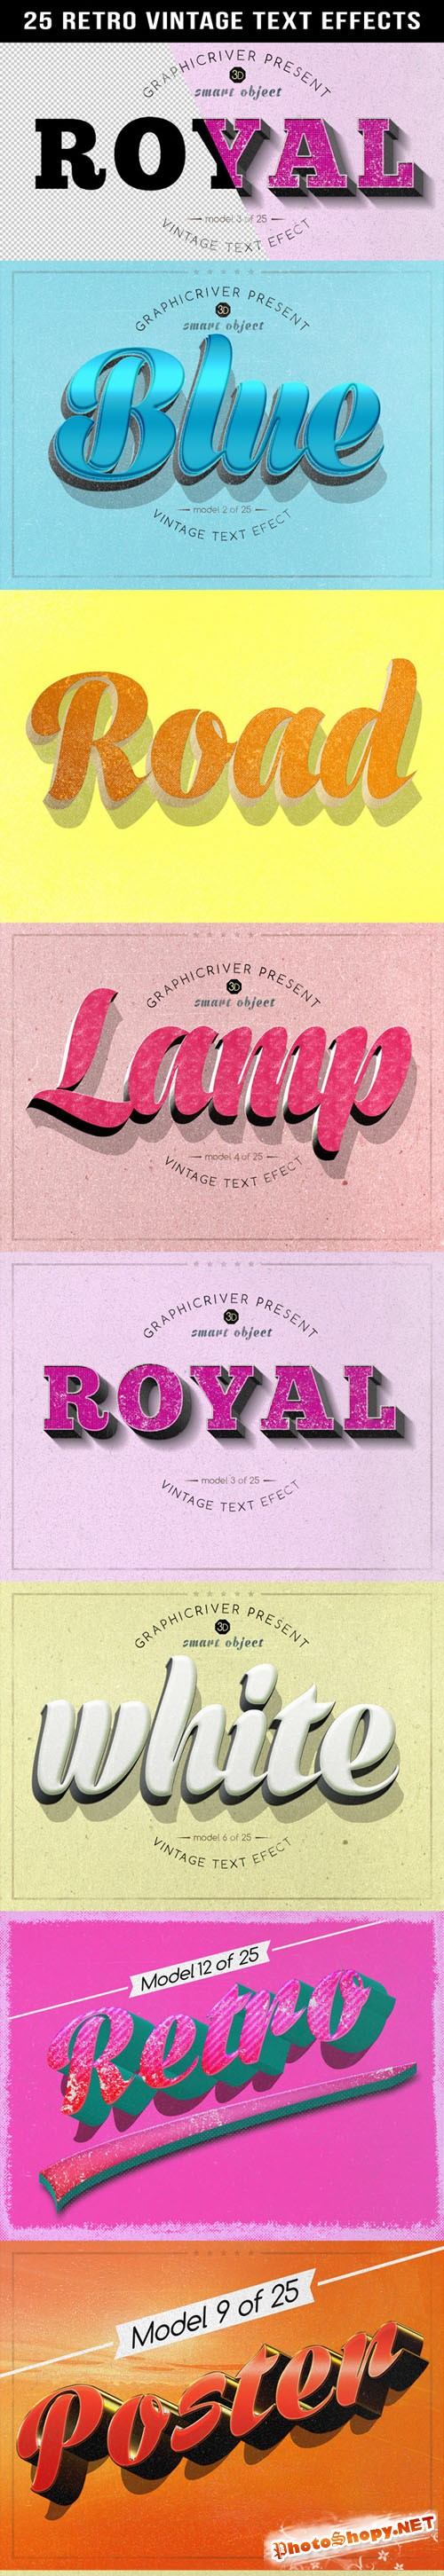 Retro Vintage Text Effects - Graphicriver 10715454